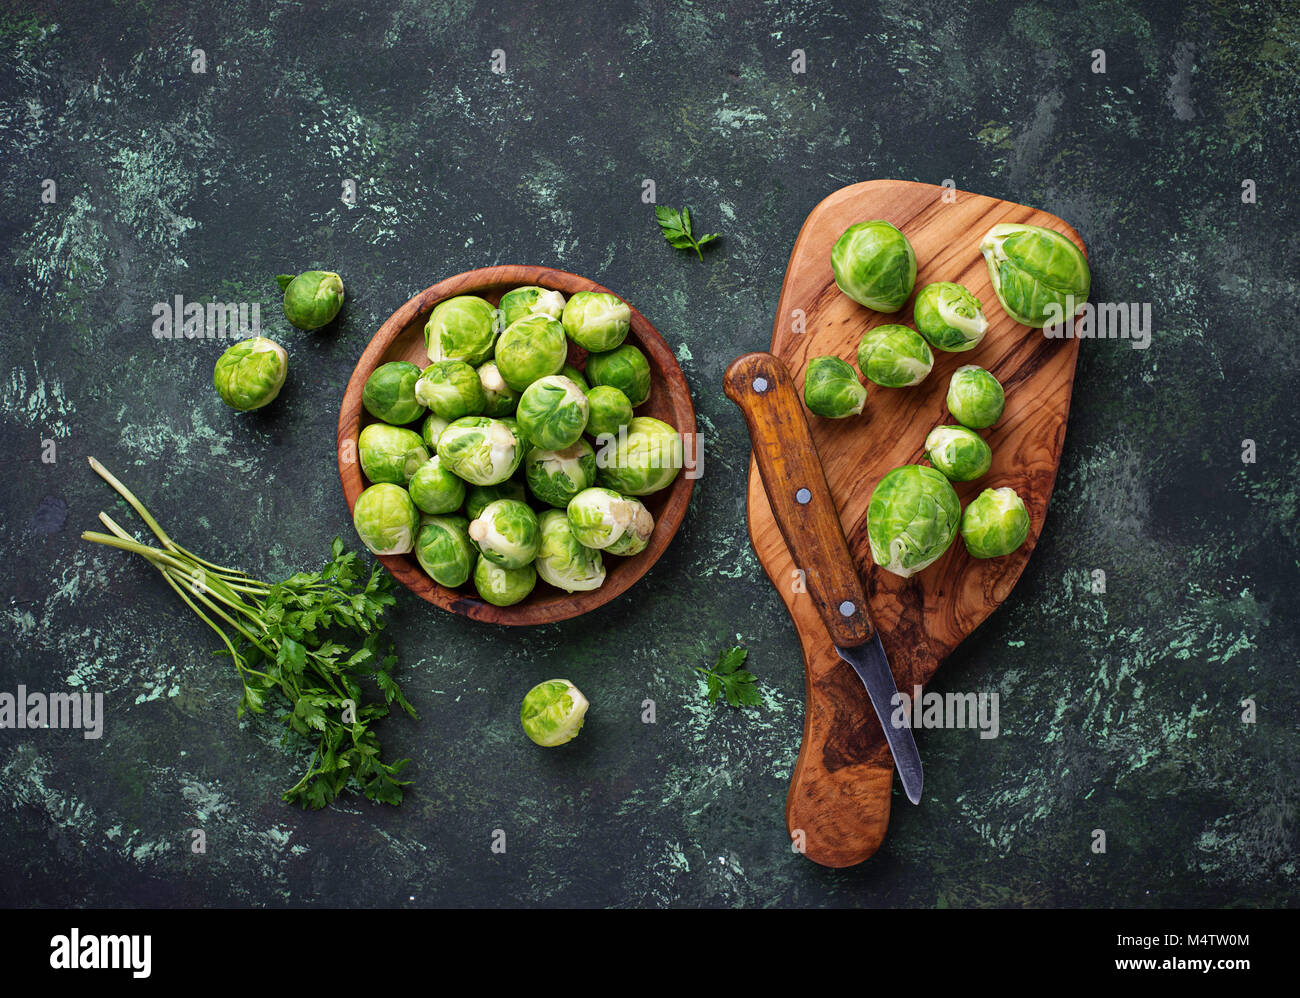 Brussels sprouts on green concrete background - Stock Image